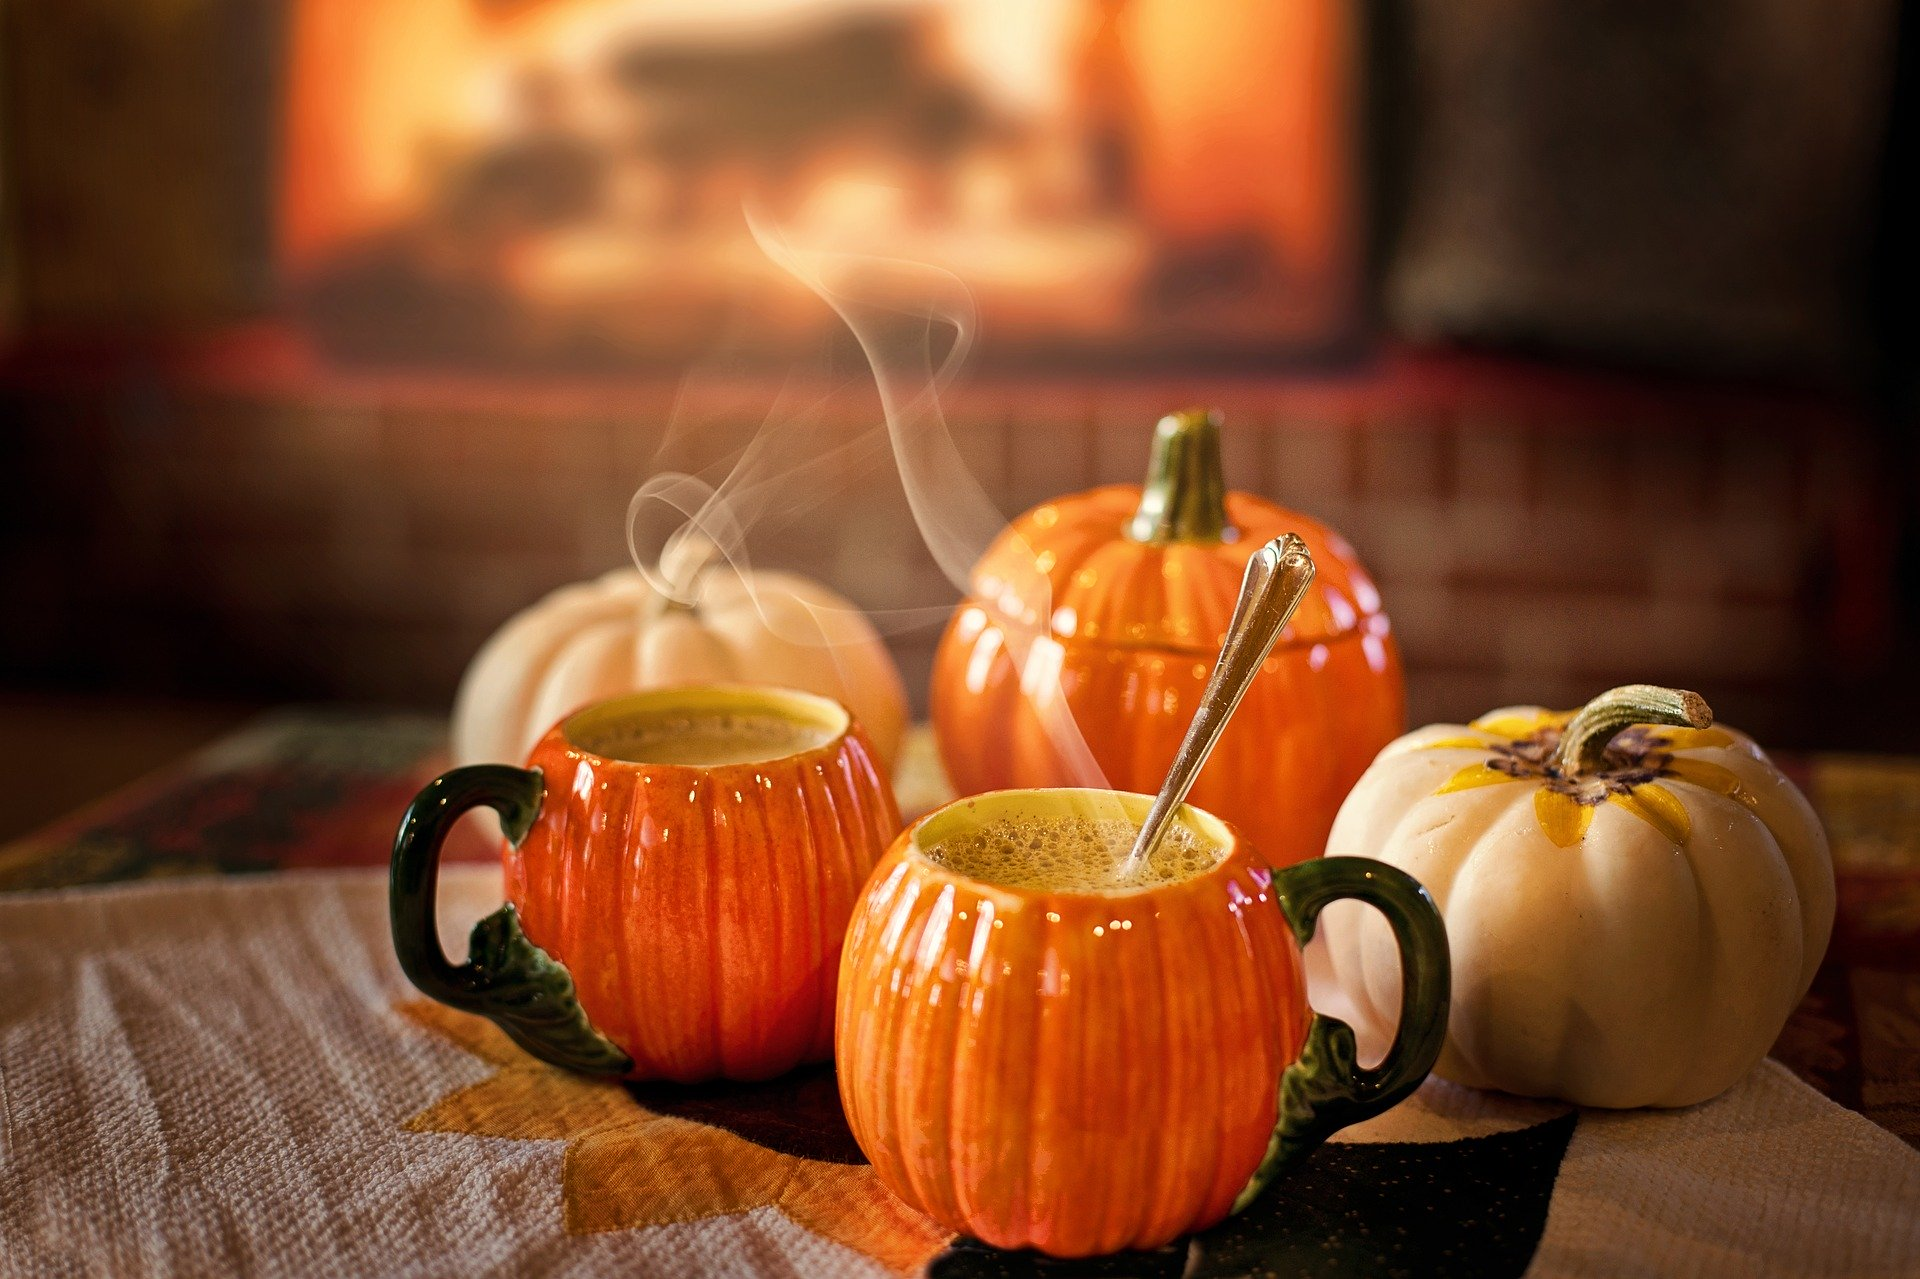 Your Fave Fall Drink Will Decide What You Read Next!